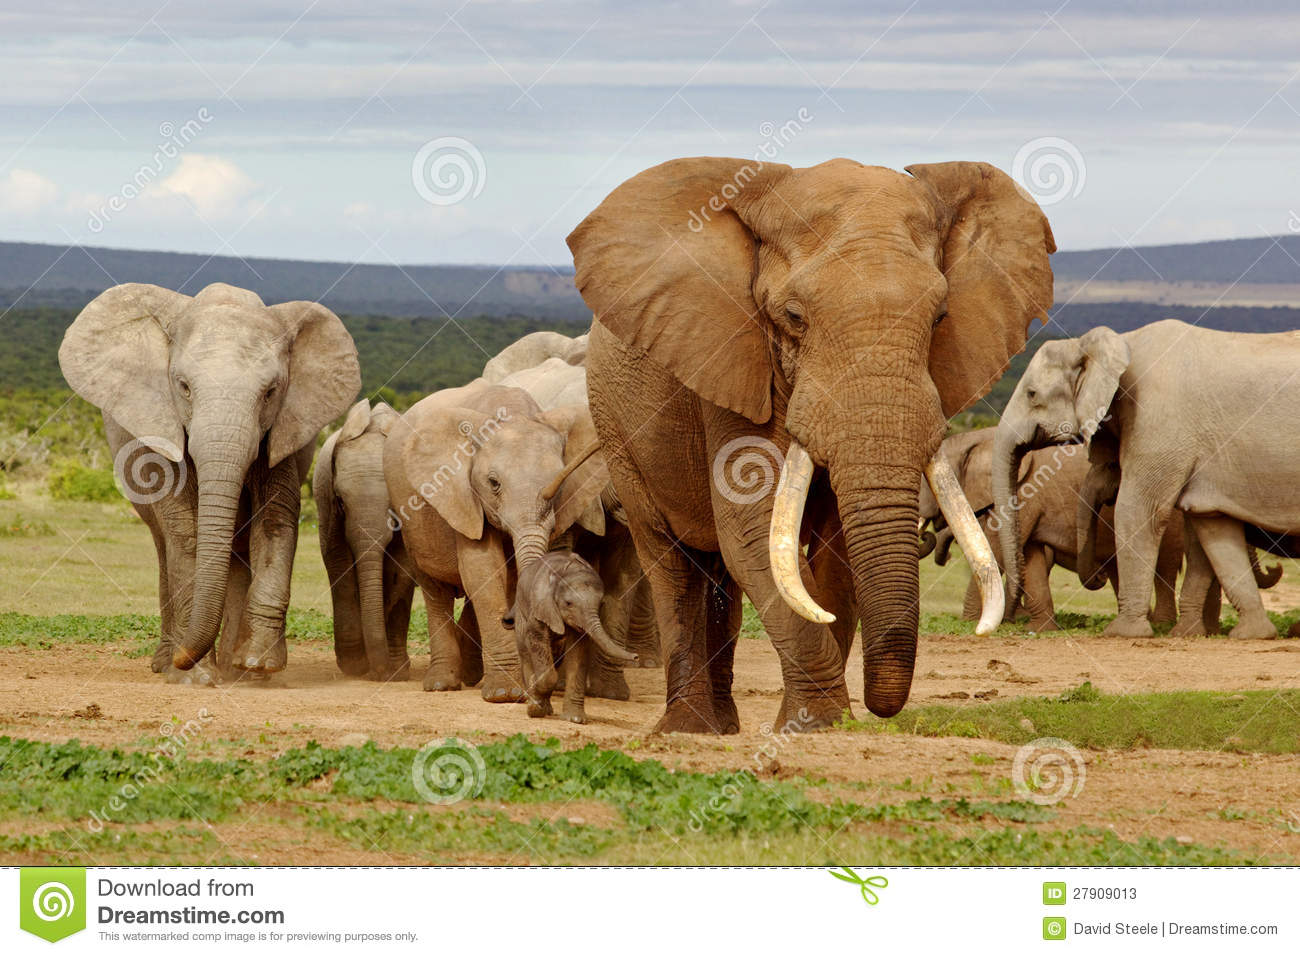 Herd Of Wild Elephants With Trees Illustration Royalty Free Cliparts,  Vectors, And Stock Illustration. Image 72580976.